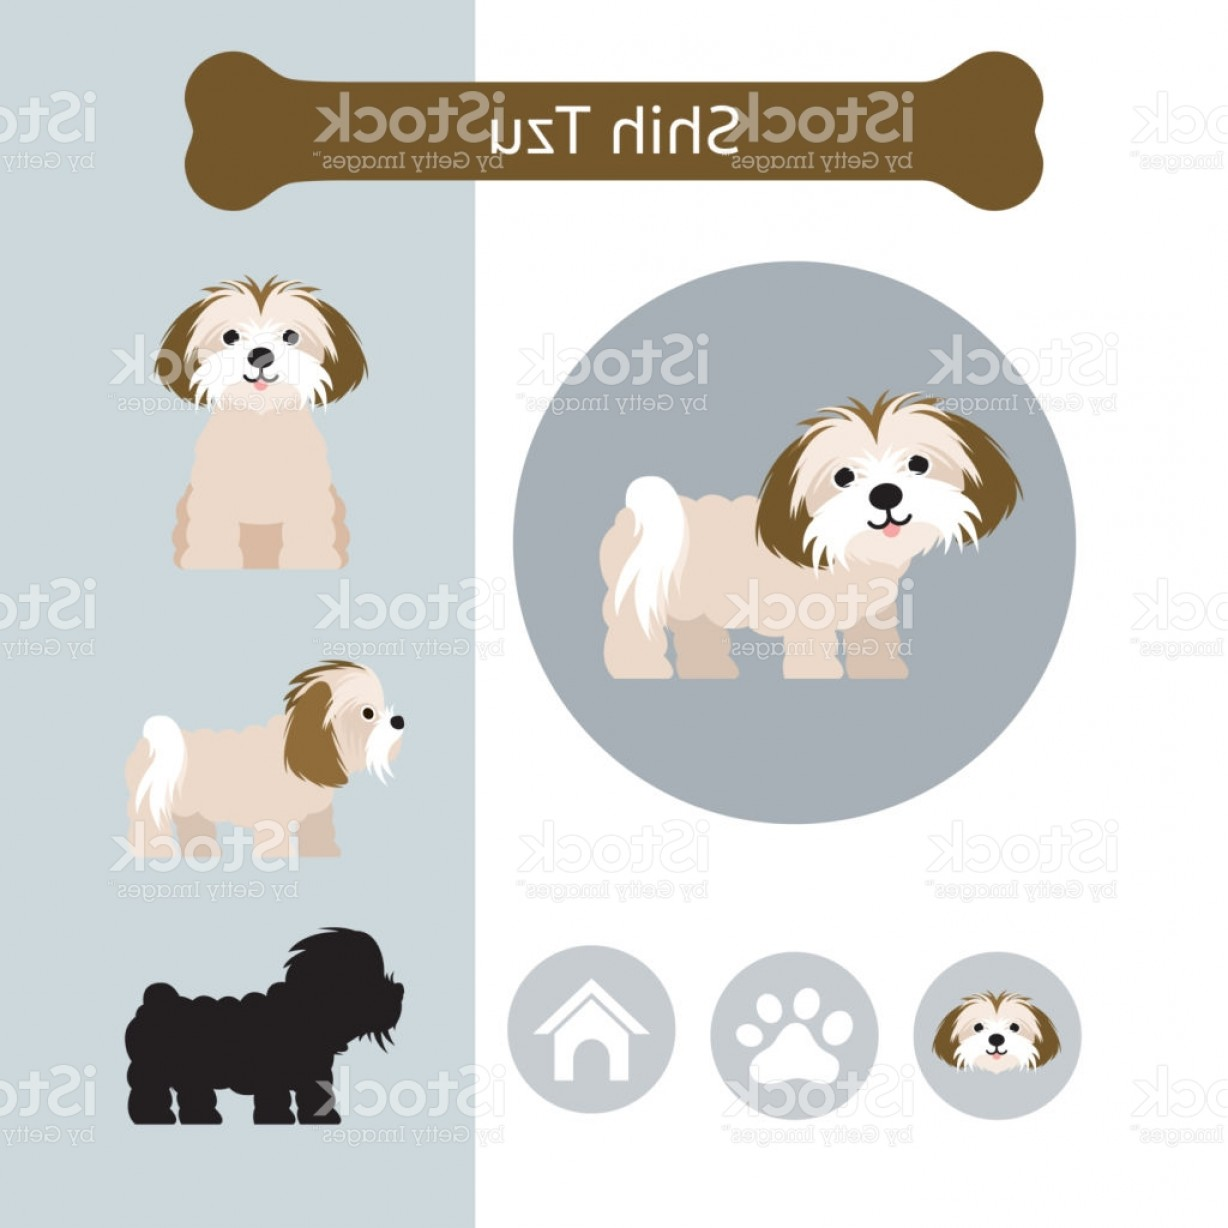 Shih Tzu Vector Siluete: Shih Tzu Dog Breed Infographic Gm